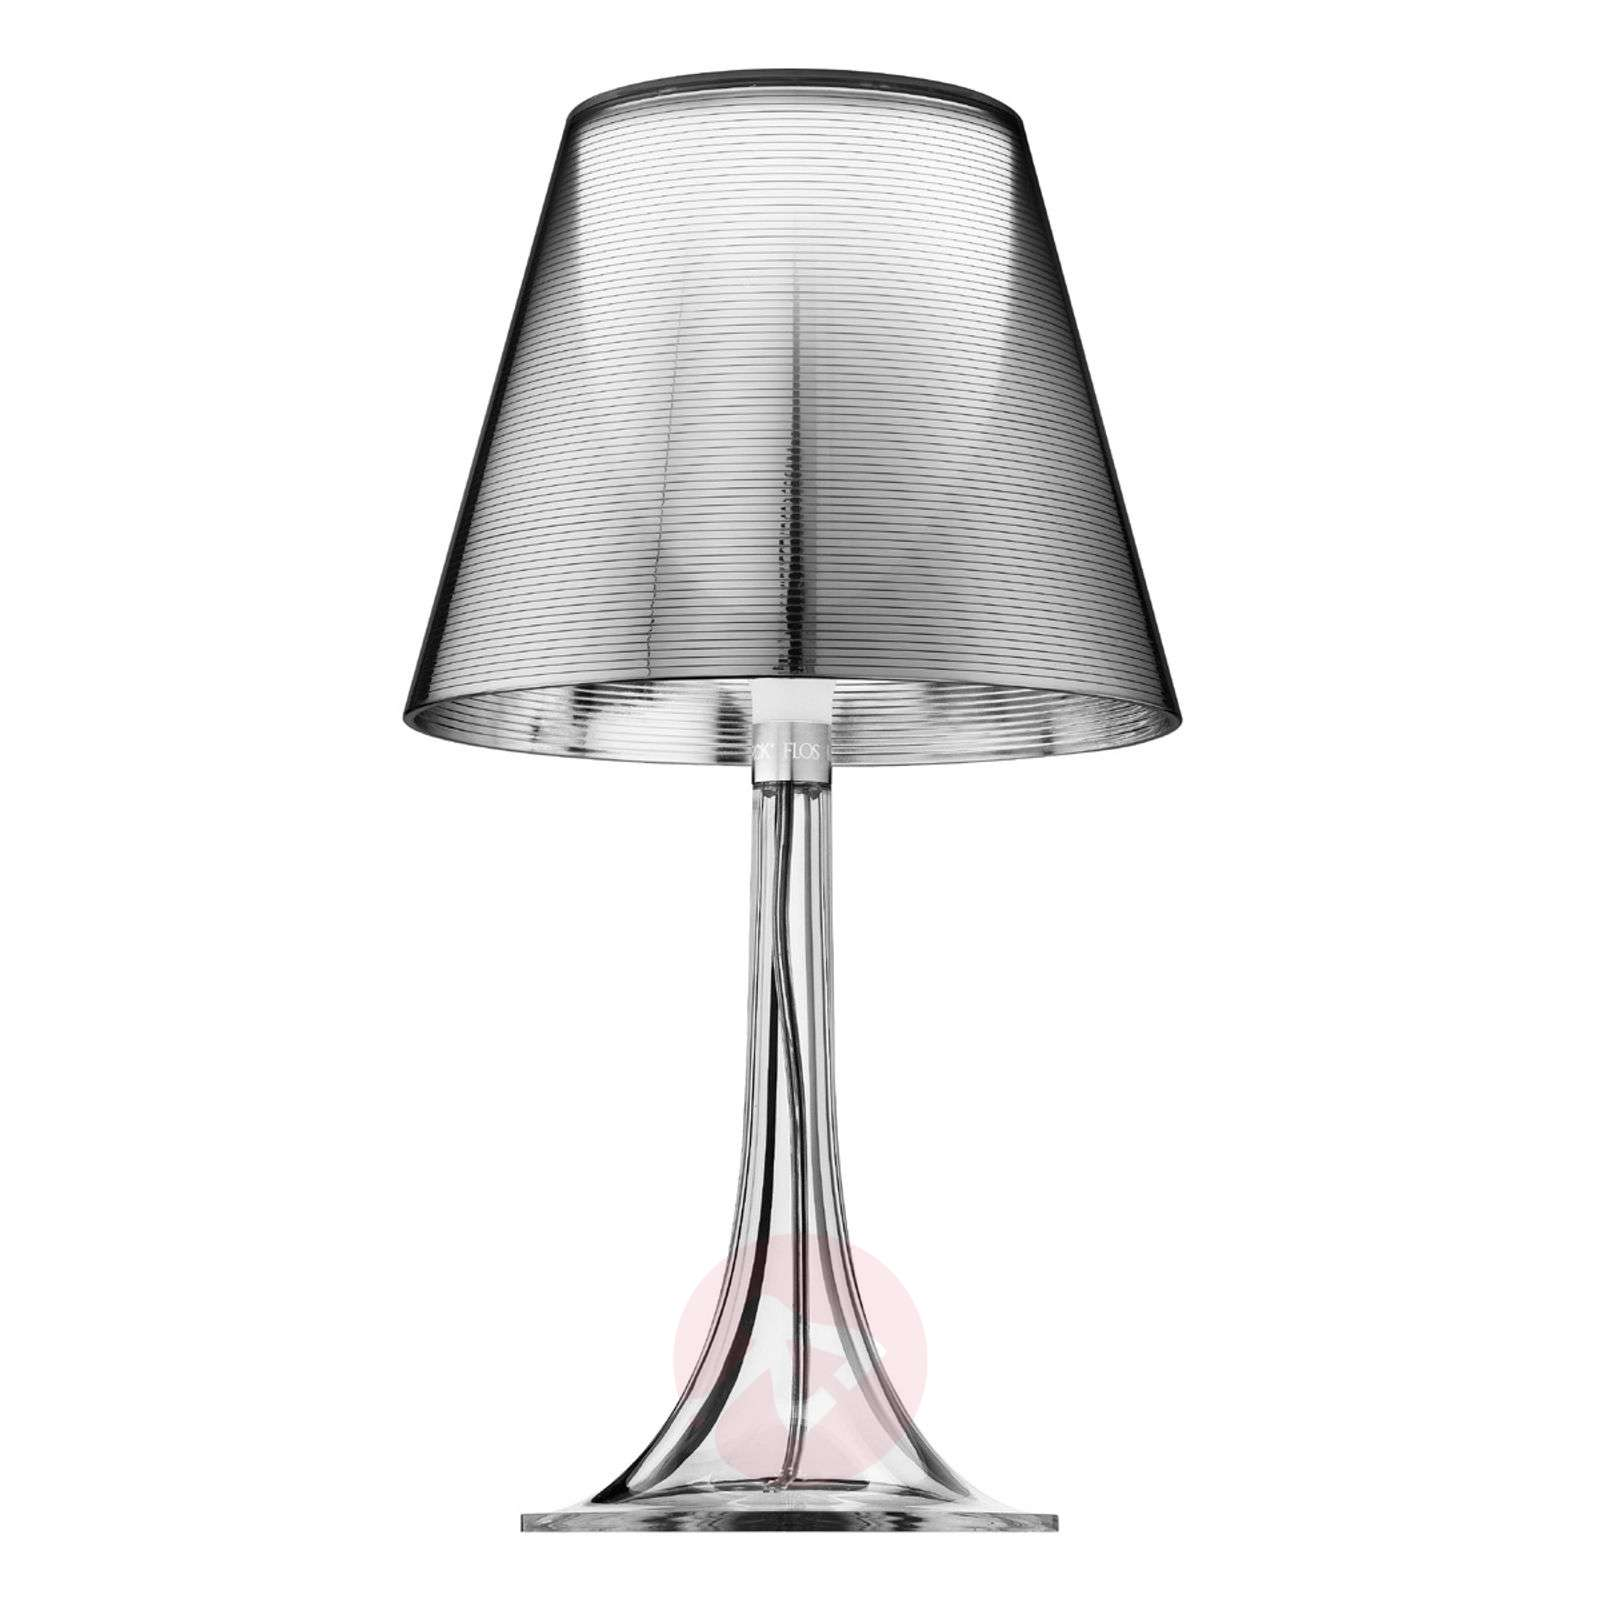 Silver table lamp MISS K with a retro design-3510015-02